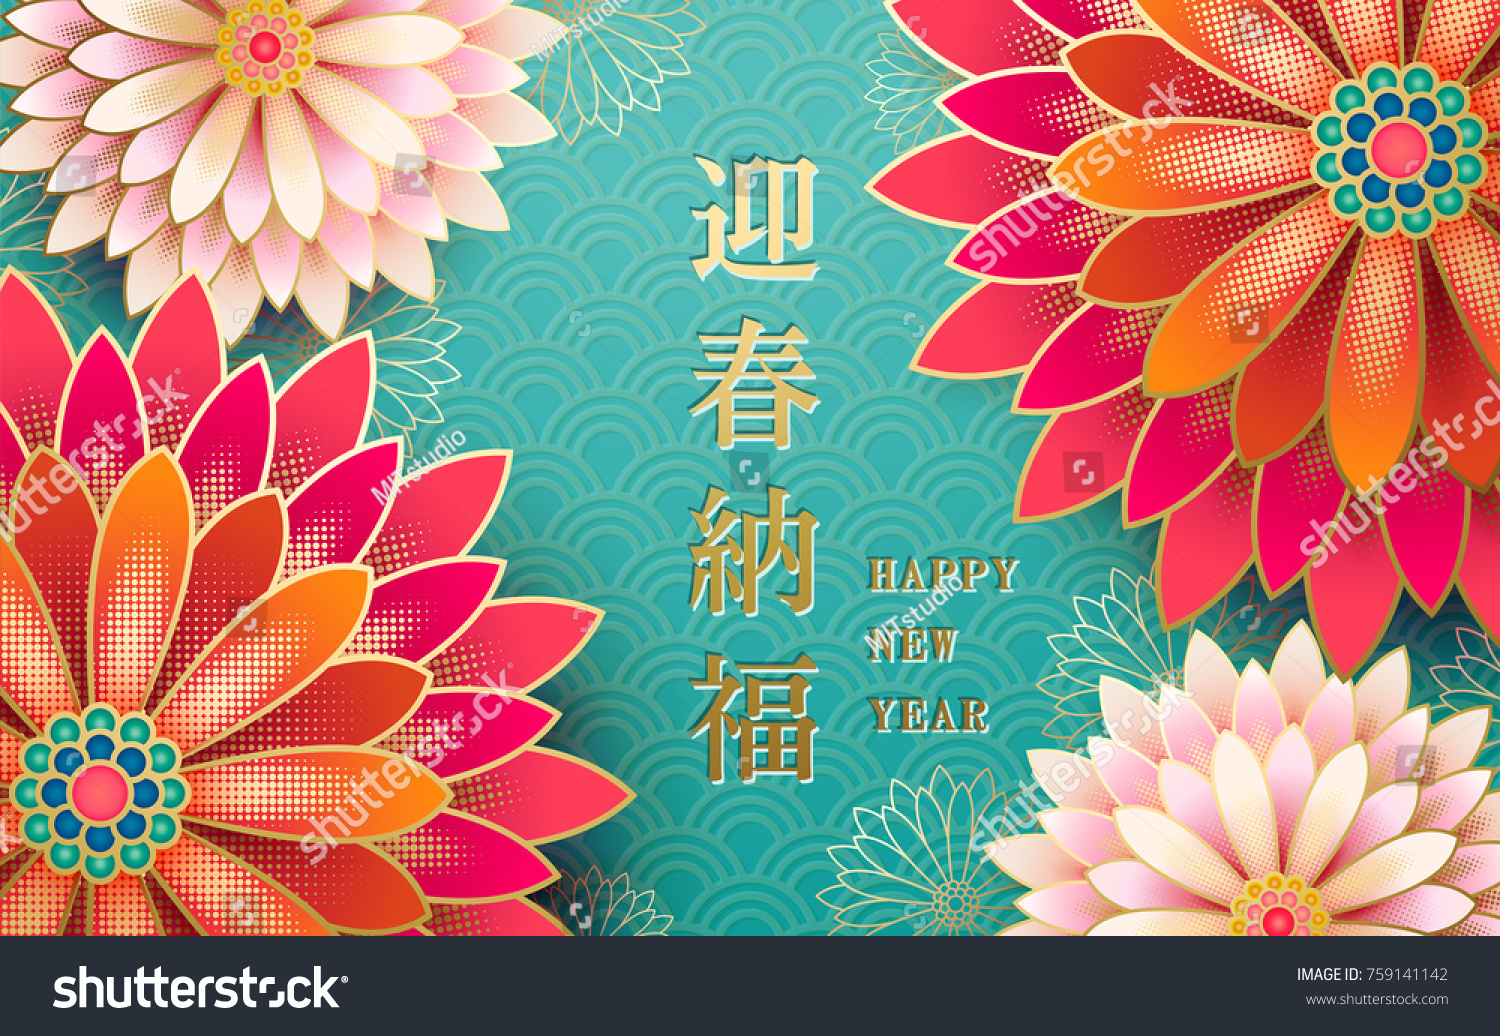 happy new year in chinese words with flowers decorative elements in turquoise tone